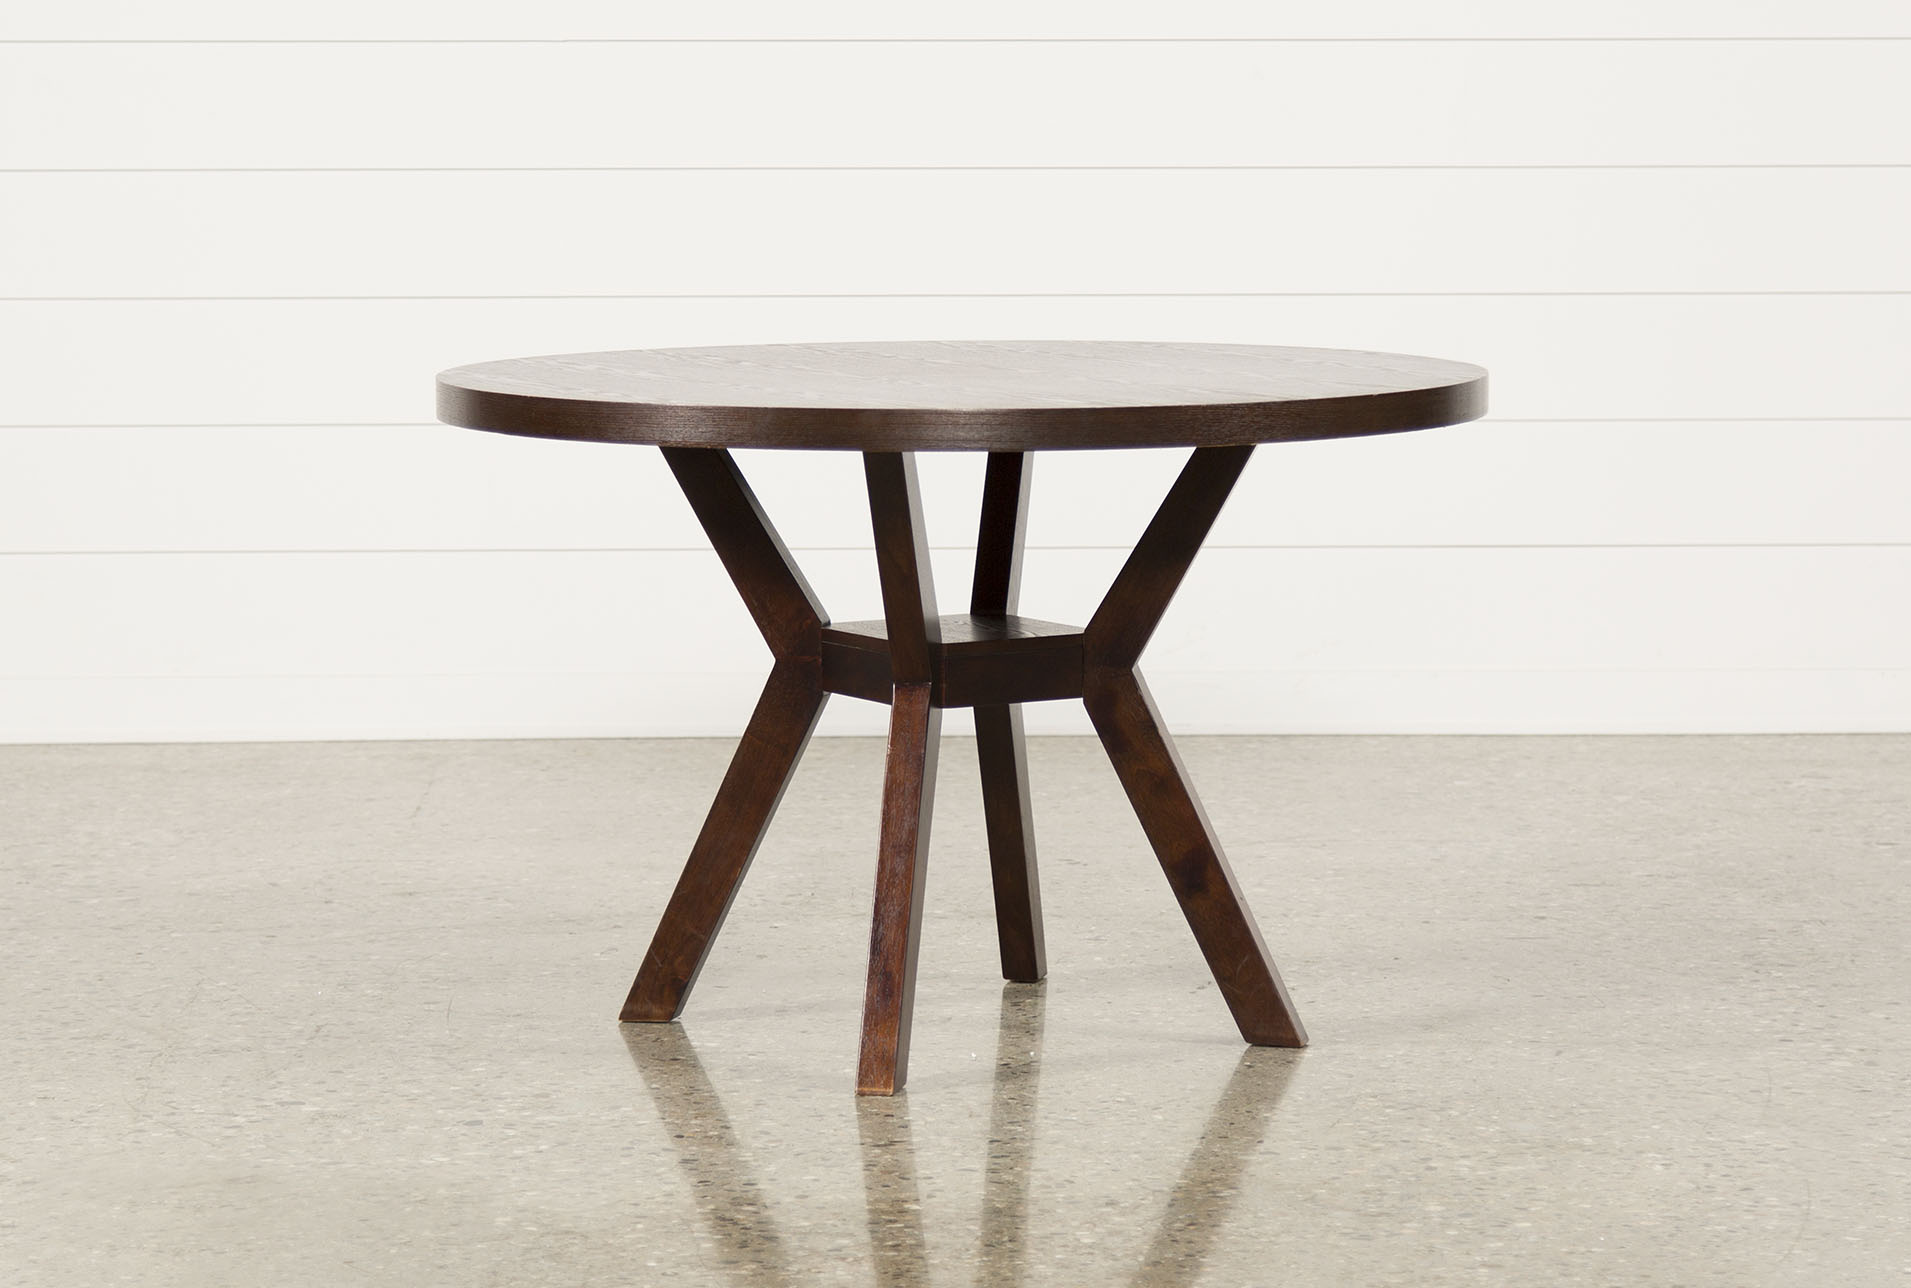 Superior Macie Round Dining Table (Qty: 1) Has Been Successfully Added To Your Cart.